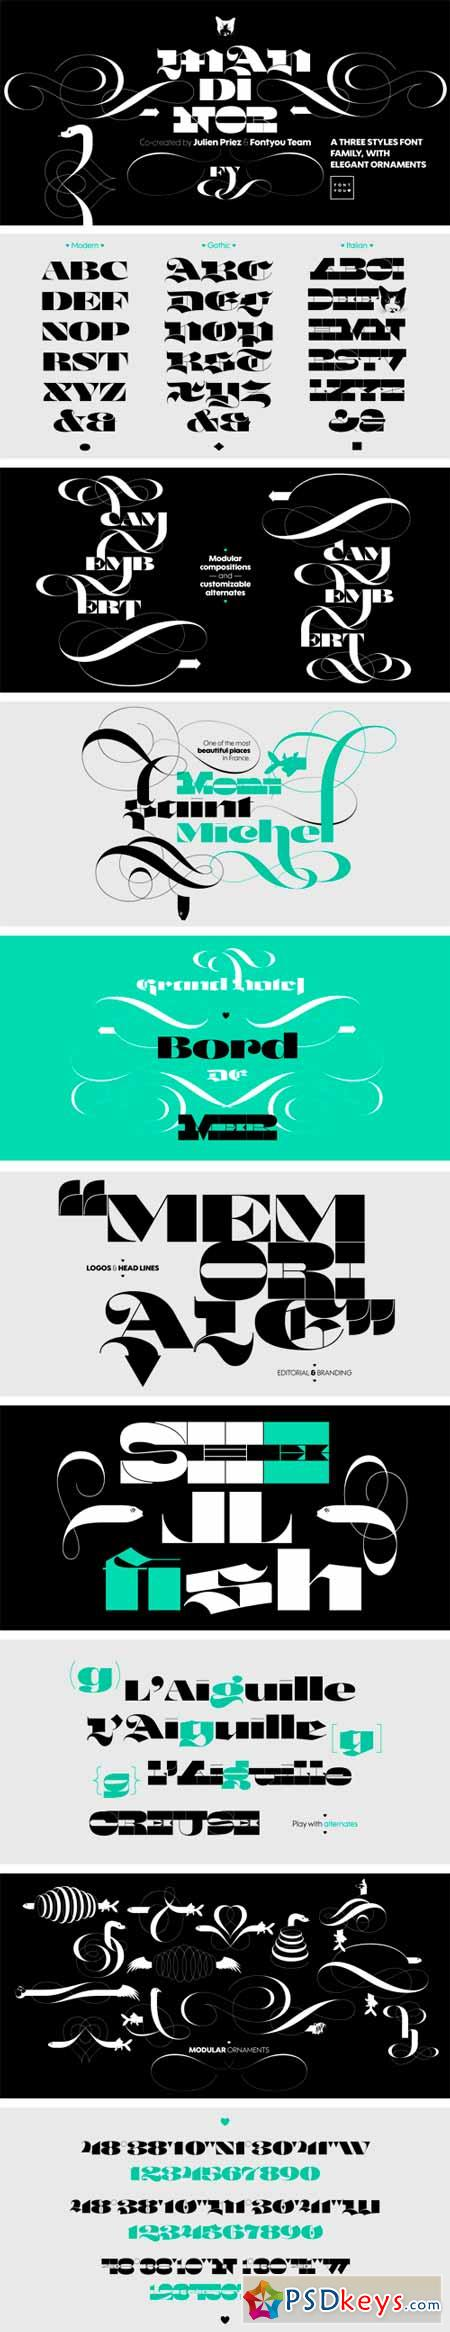 Mandinor FY Font Family - 4 Fonts for $100